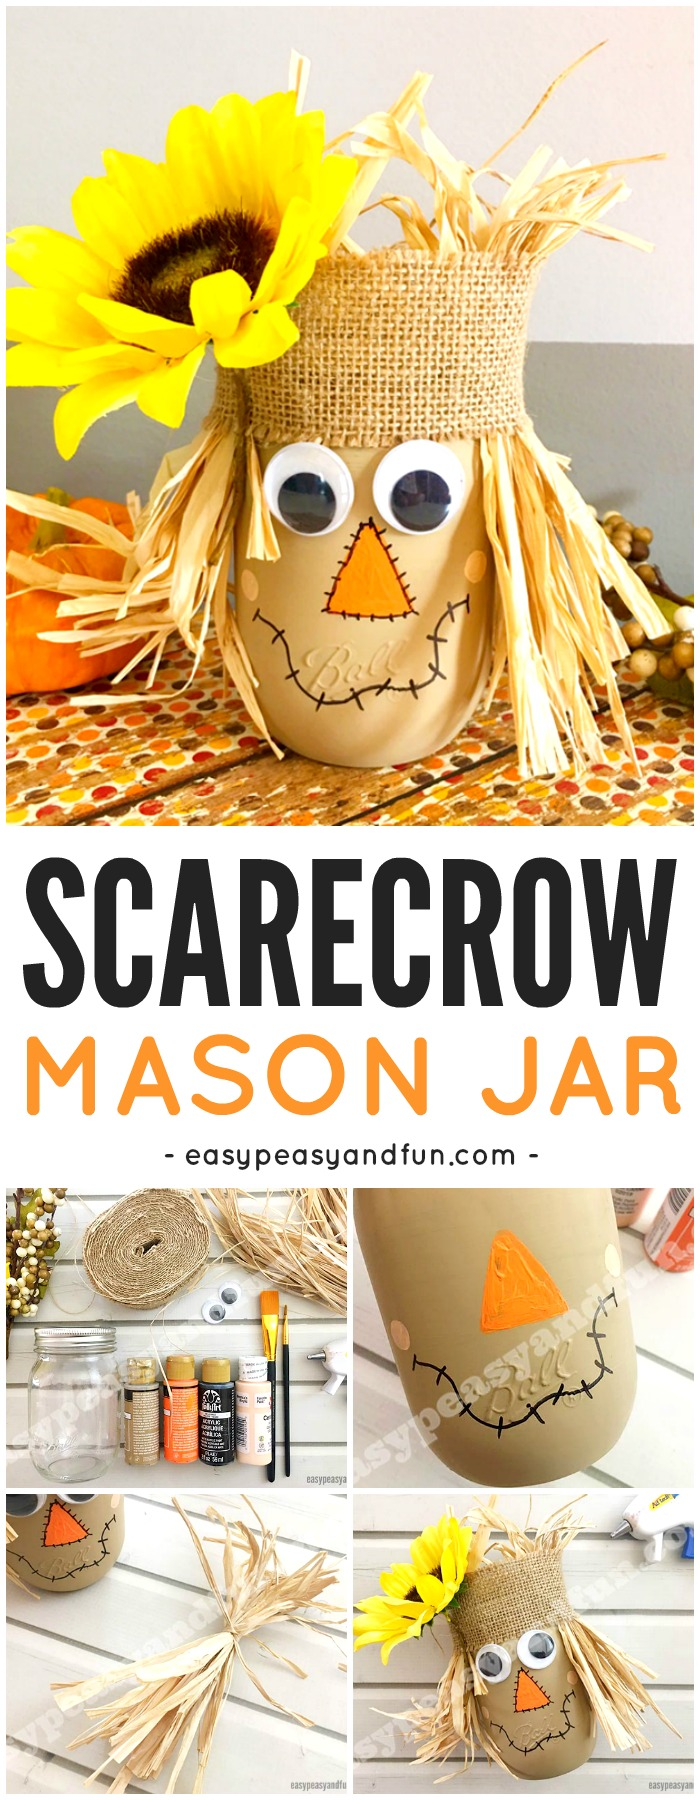 Adorable Scarecrow Mason Jar Halloween Craft for Kids. Fun Fall craft idea for kids too.